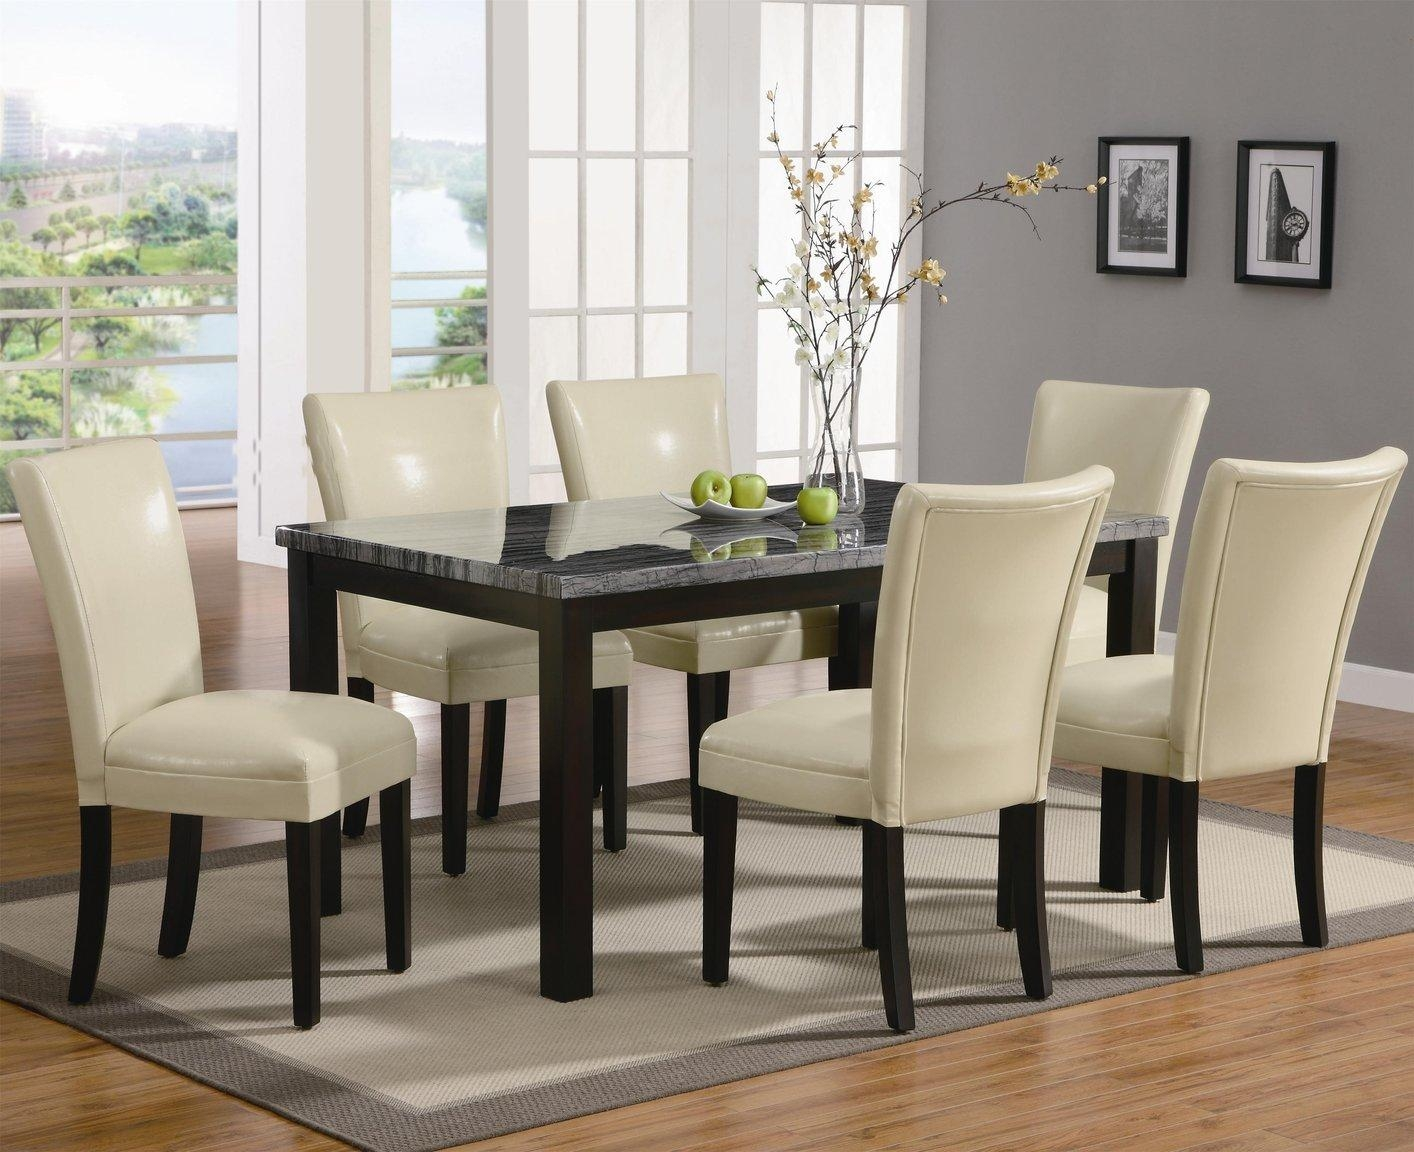 Furniture: Armless Chair Slipcover For Room With Unique Richness Inside Dining Sofa Chairs (Image 16 of 20)